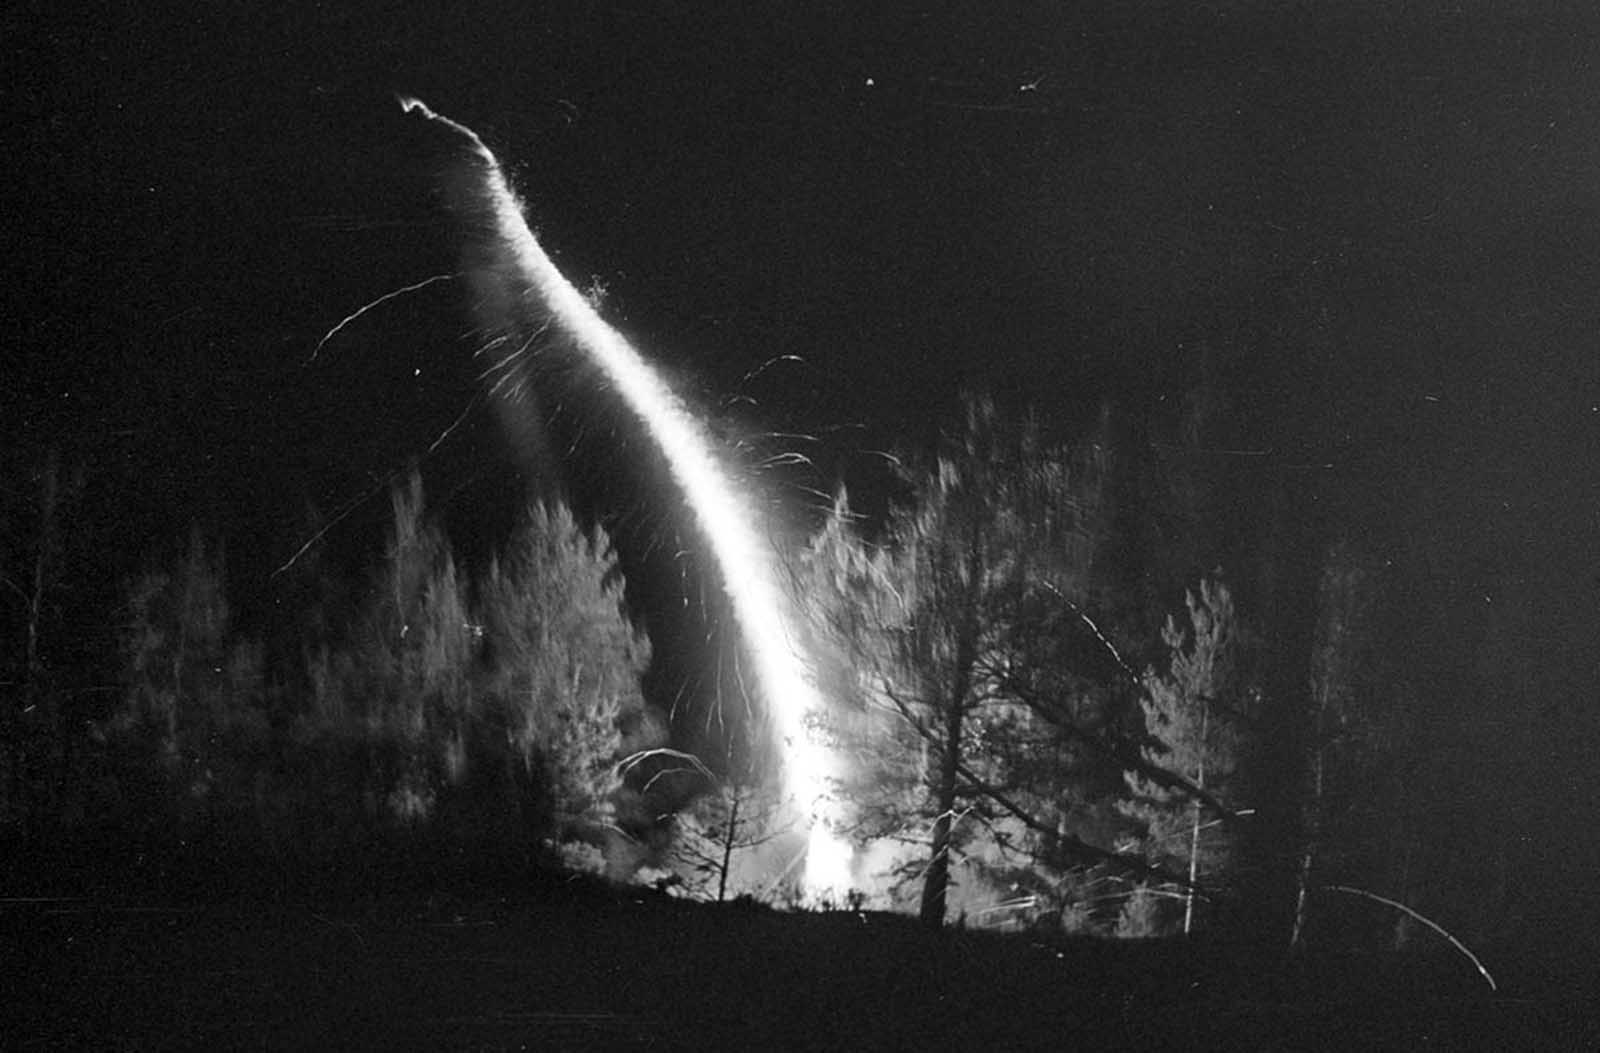 A small rocket launched in the woods.